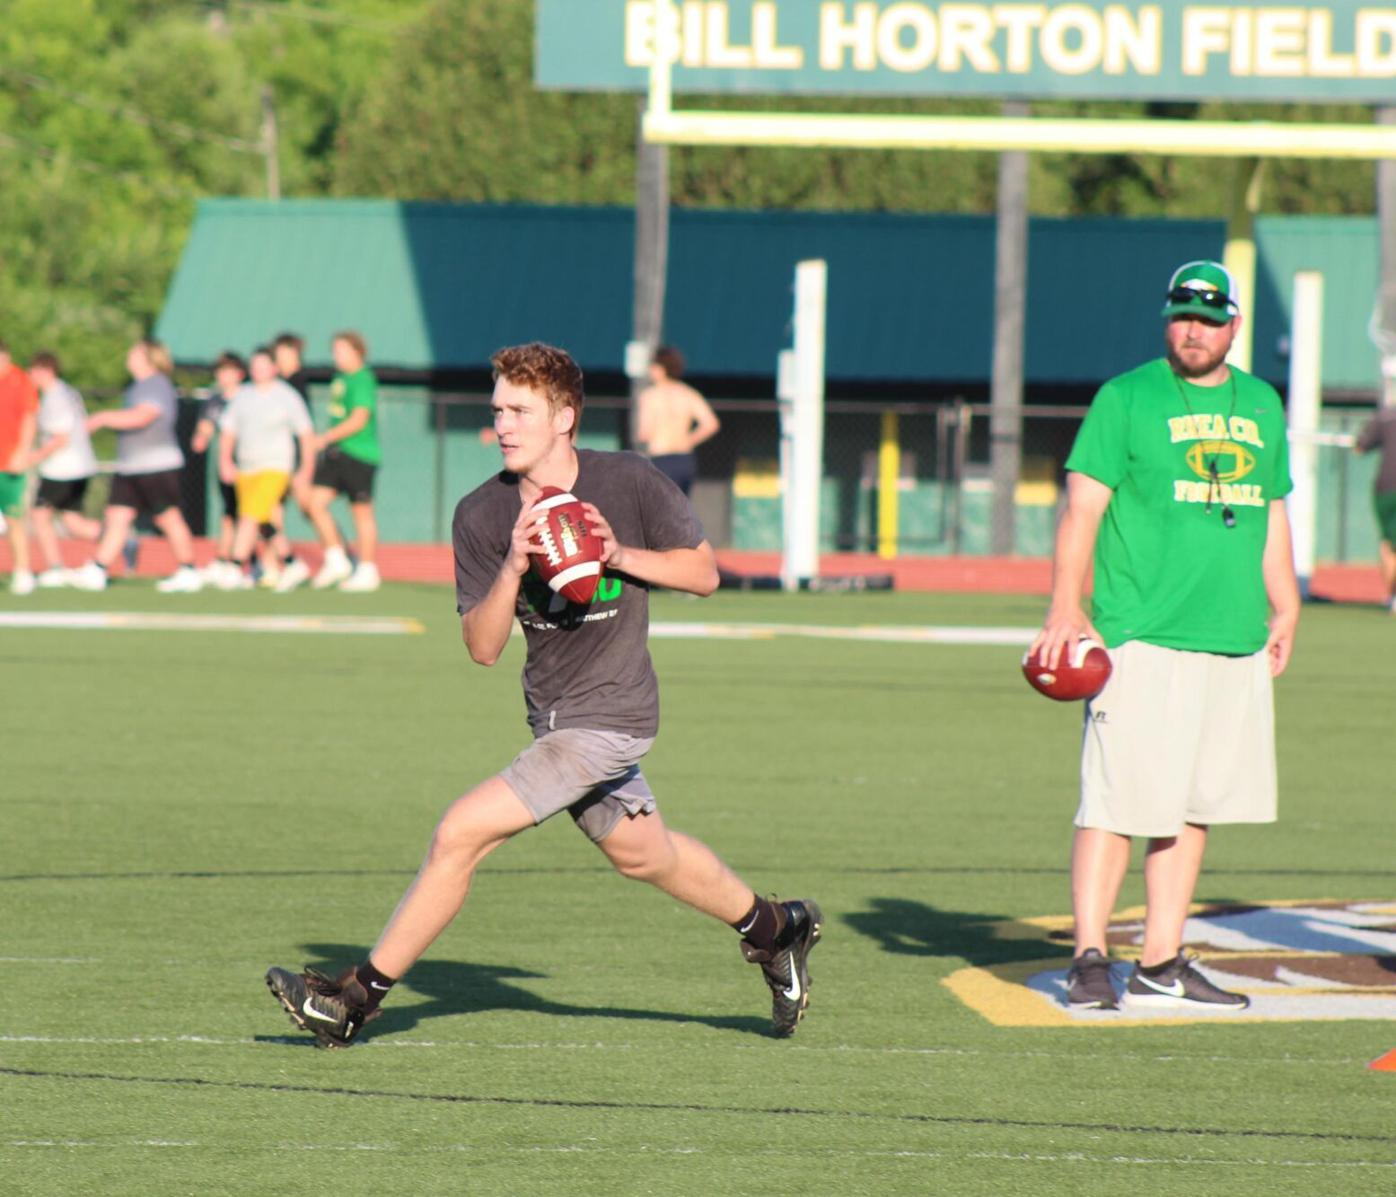 RCHS FOOTBALL PRACTICE RESUMES ON JULY 6